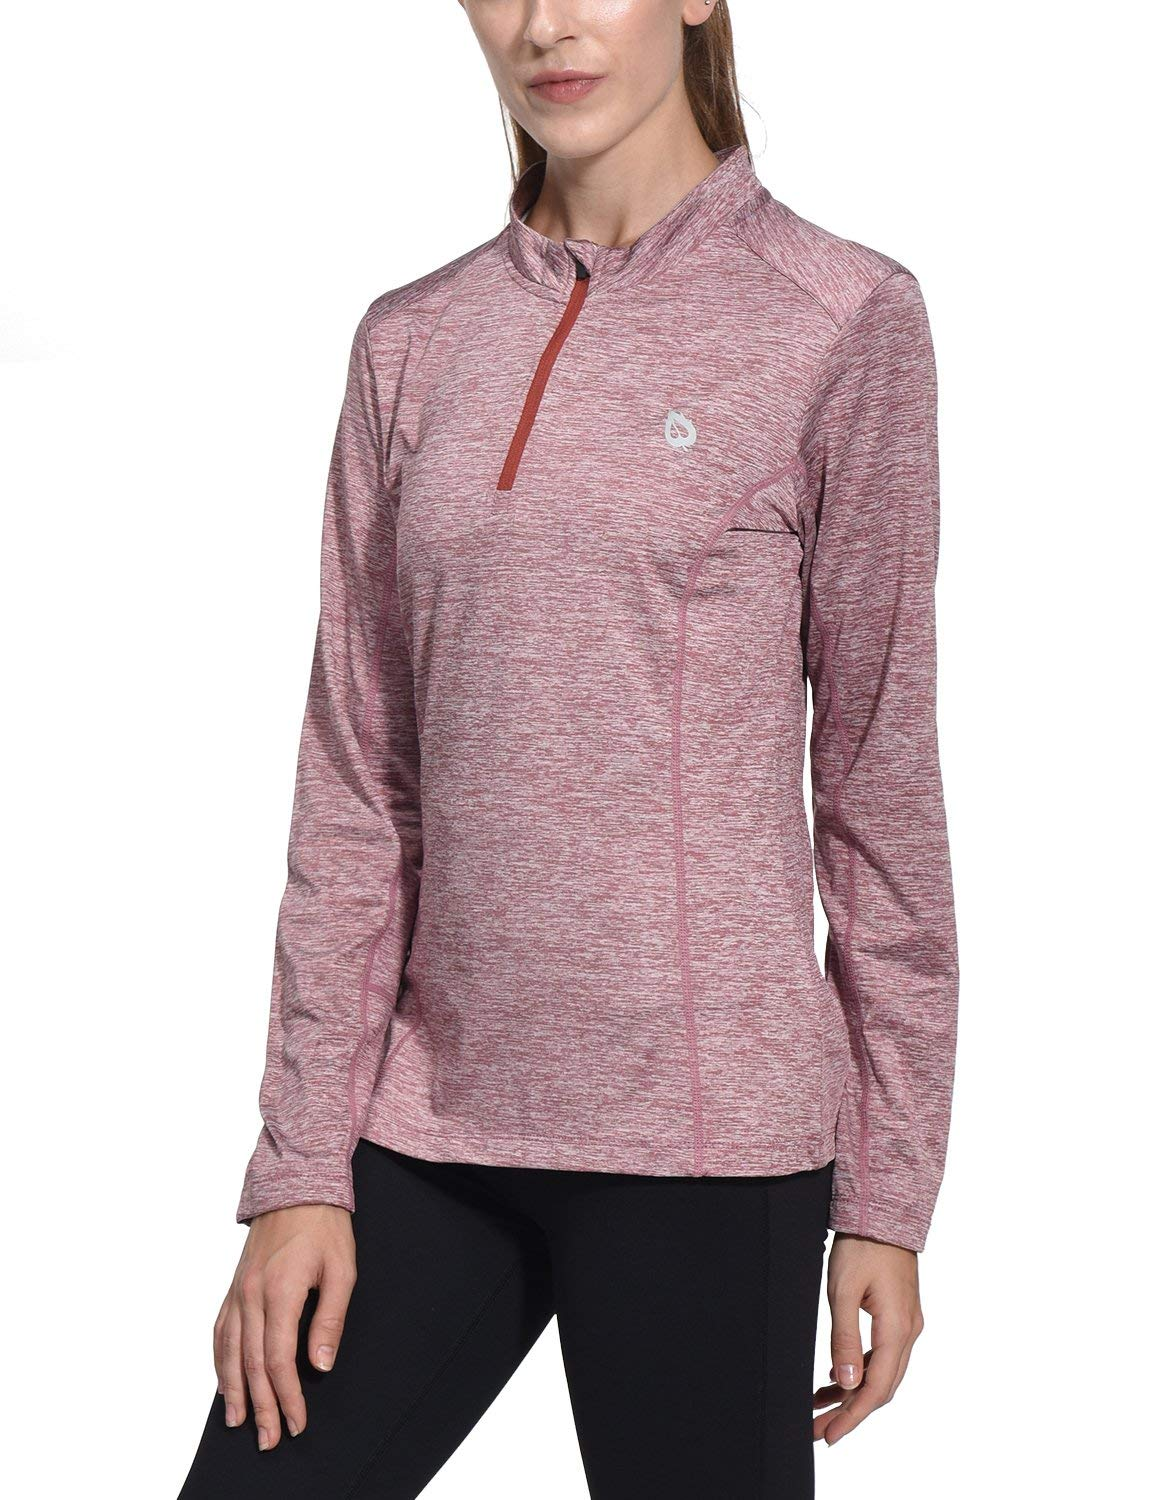 Baleaf Women's Thermal Running Shirts Long Sleeve 1/4 Zip Pullover Red XS